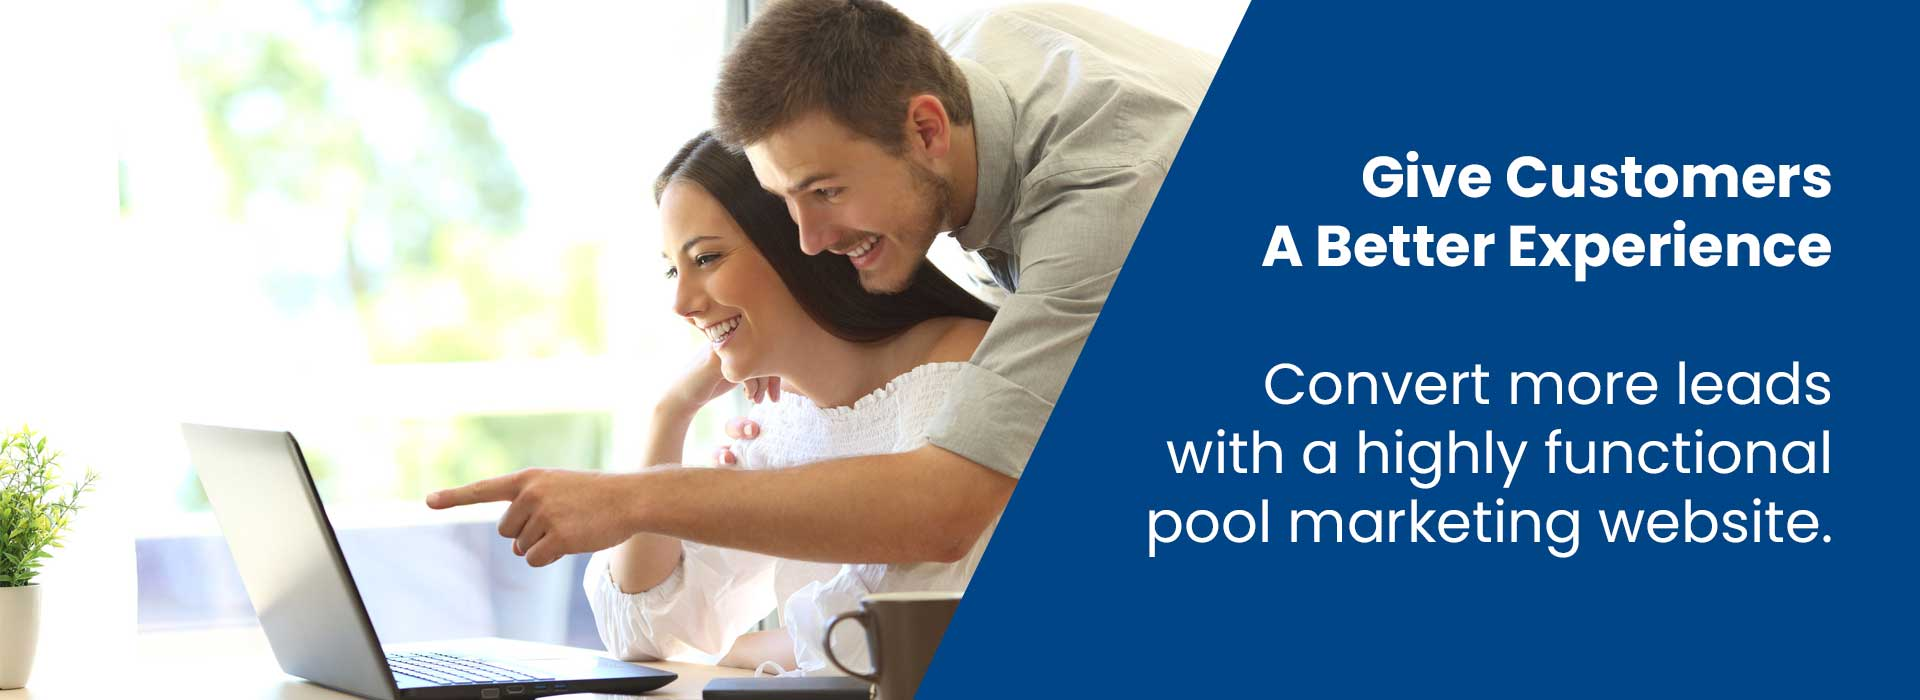 Give customers a better experience - convert more leads with a highly functional pool marketing website.